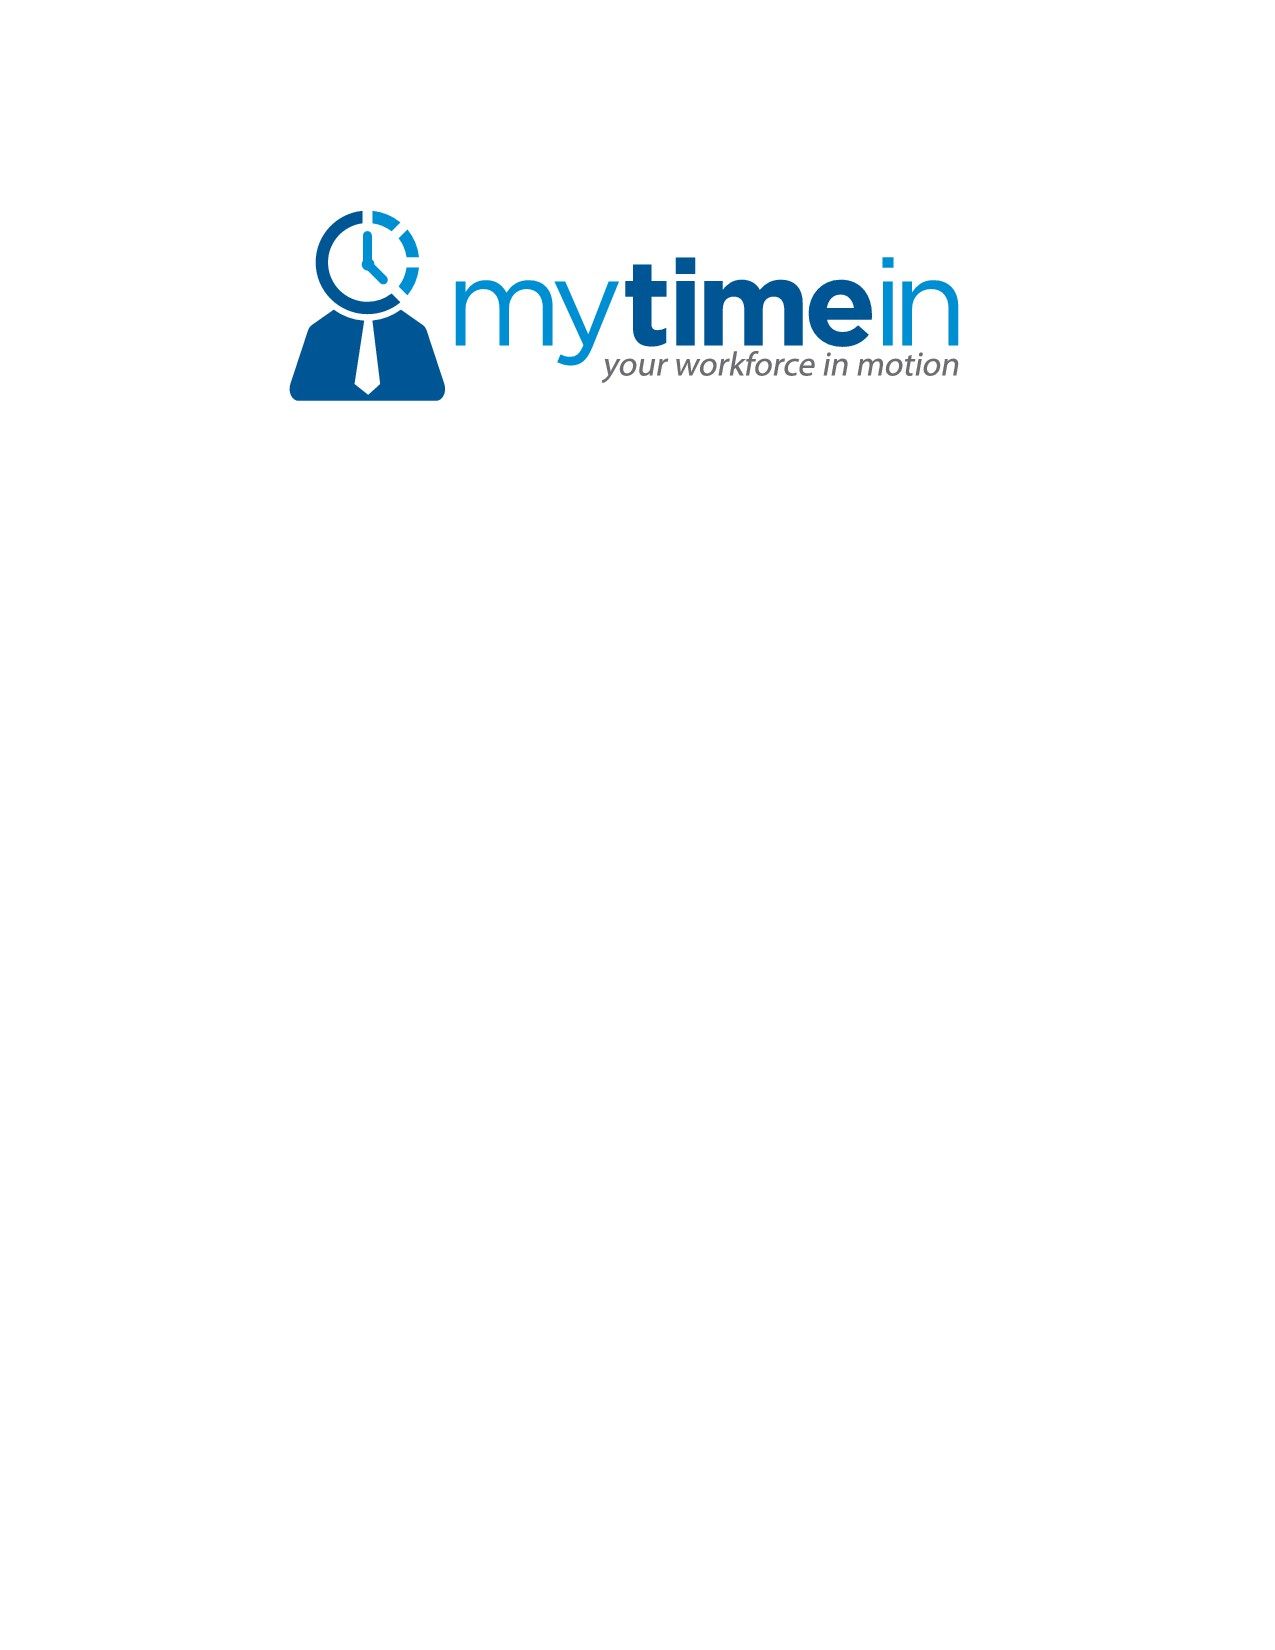 create a time oriented logo for www.mytimein.com employee time tracking